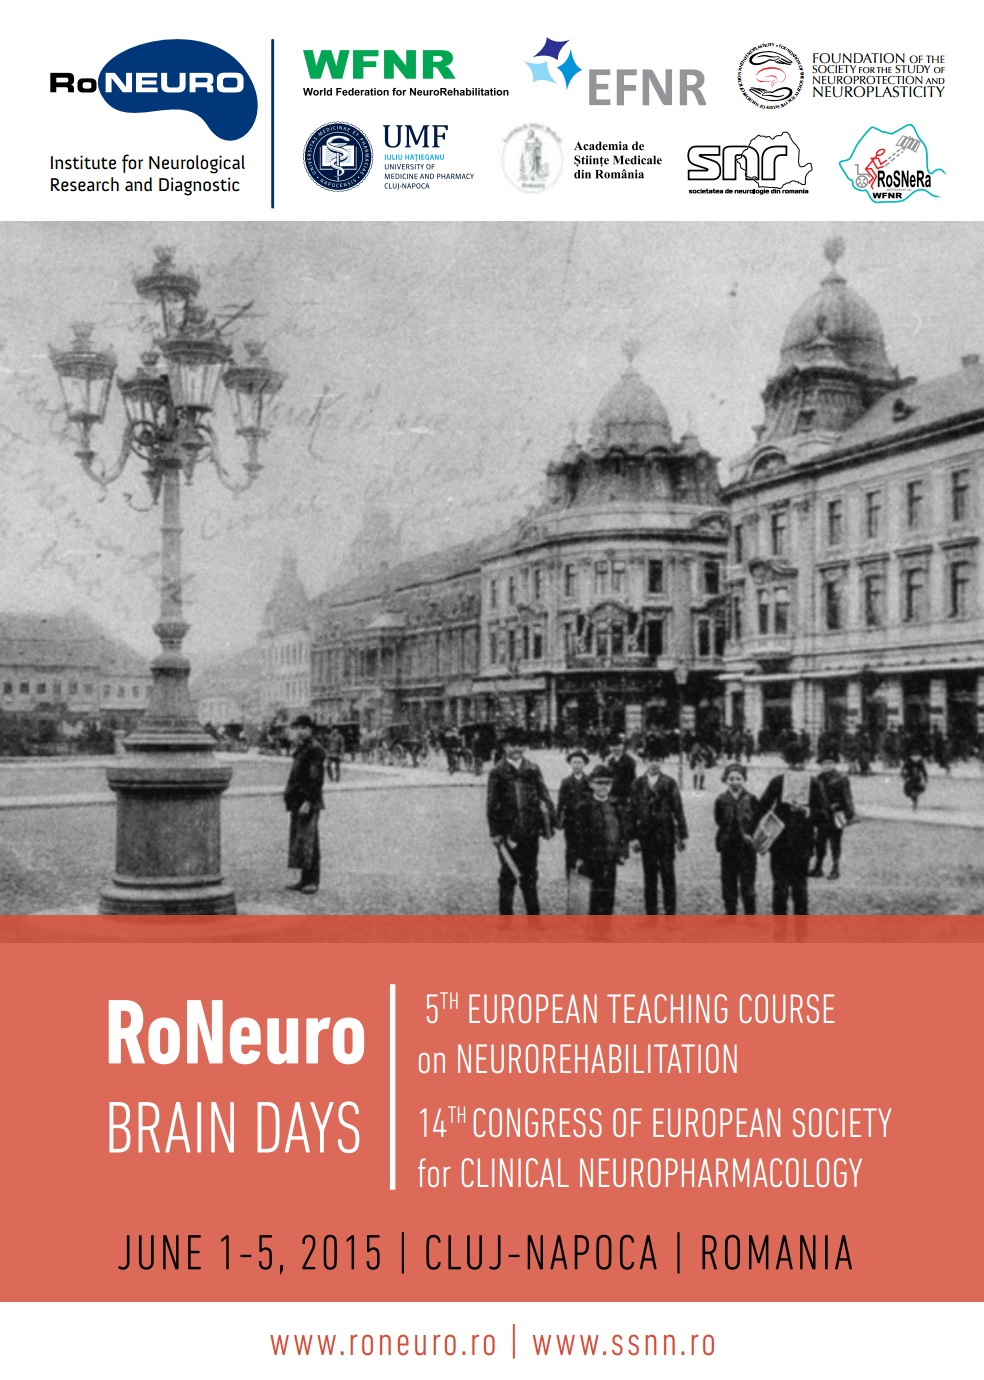 RoNeuro Brain Days